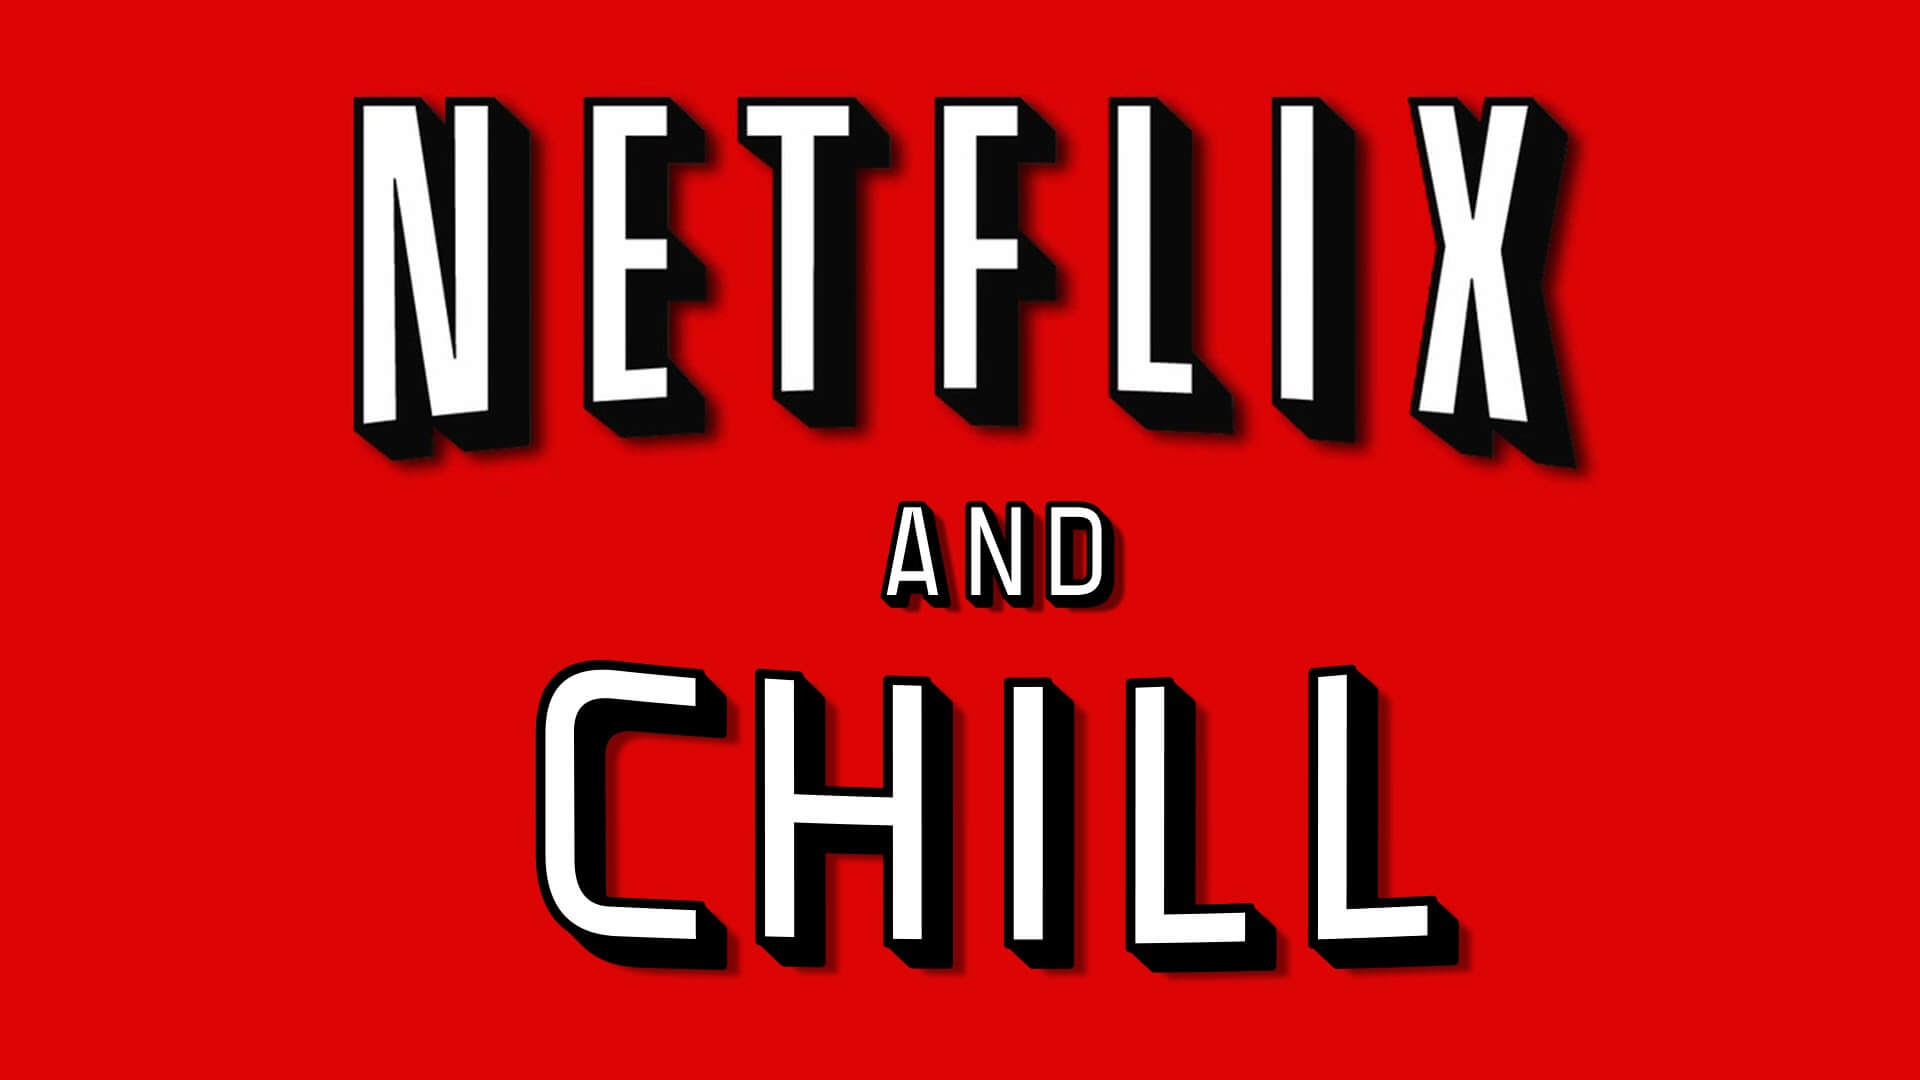 Netflix and chill finding more time